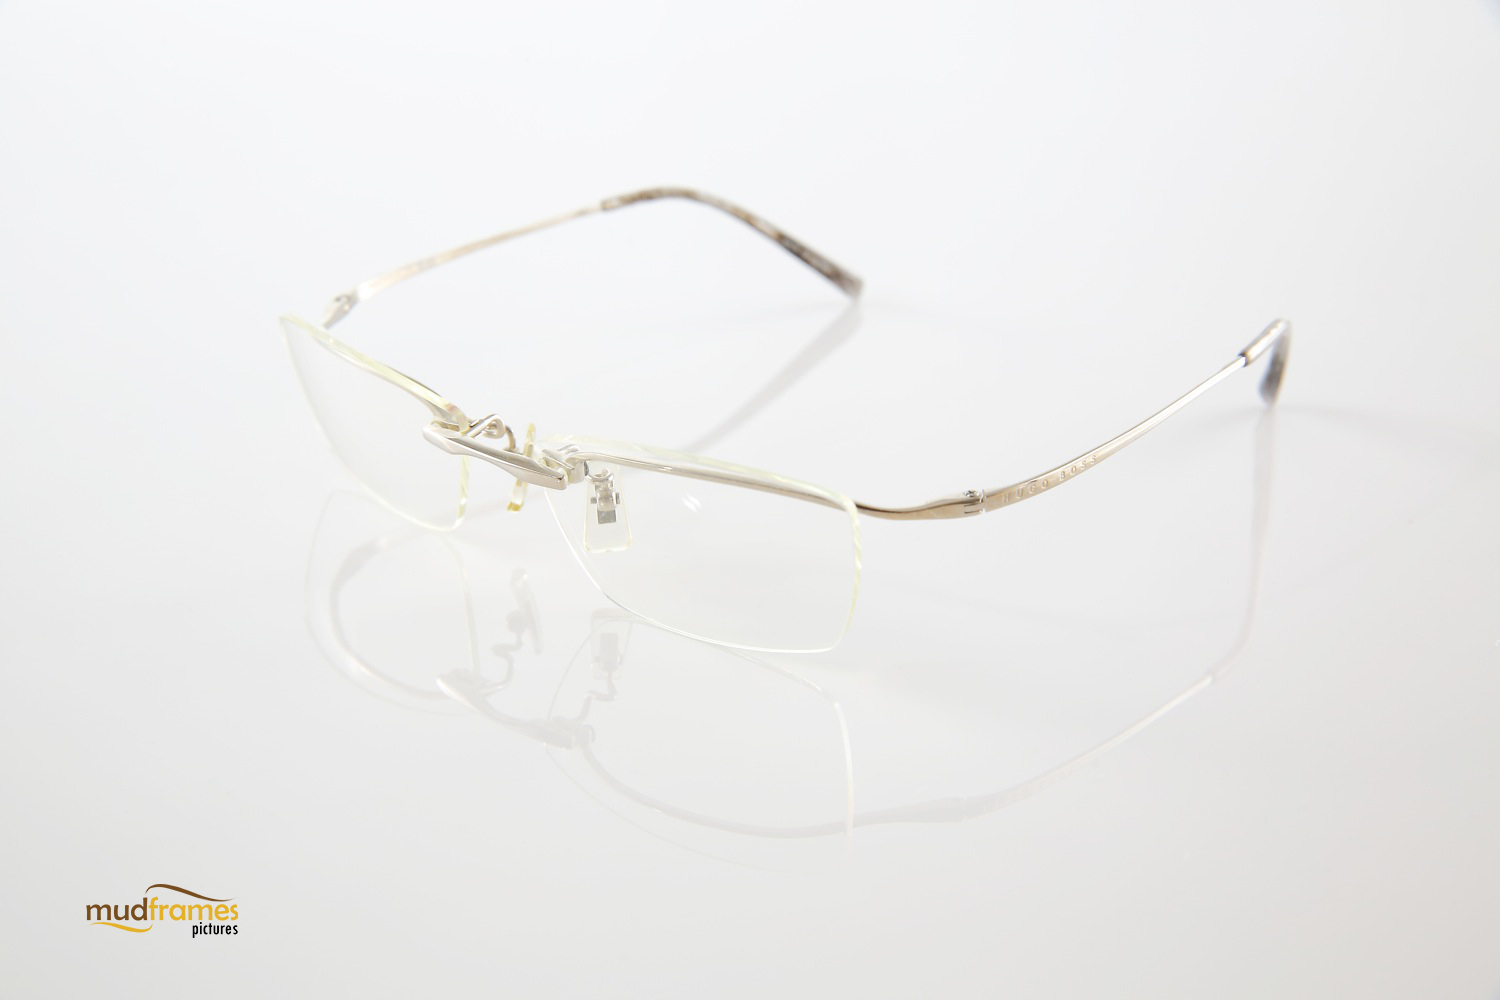 Hugo boss spectacles on white background